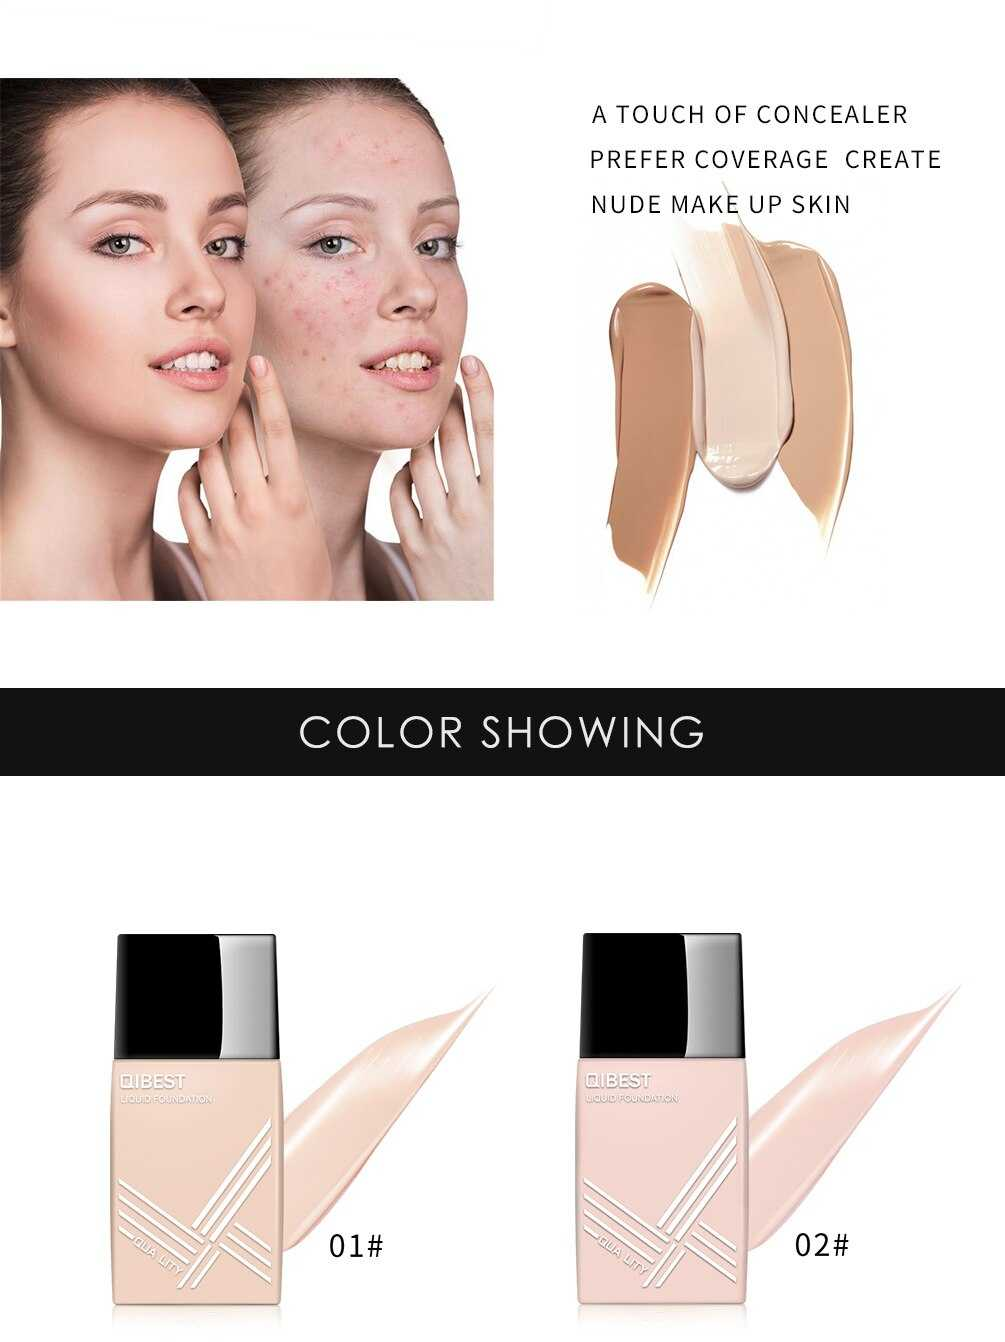 QIBEST Light Natural Foundation